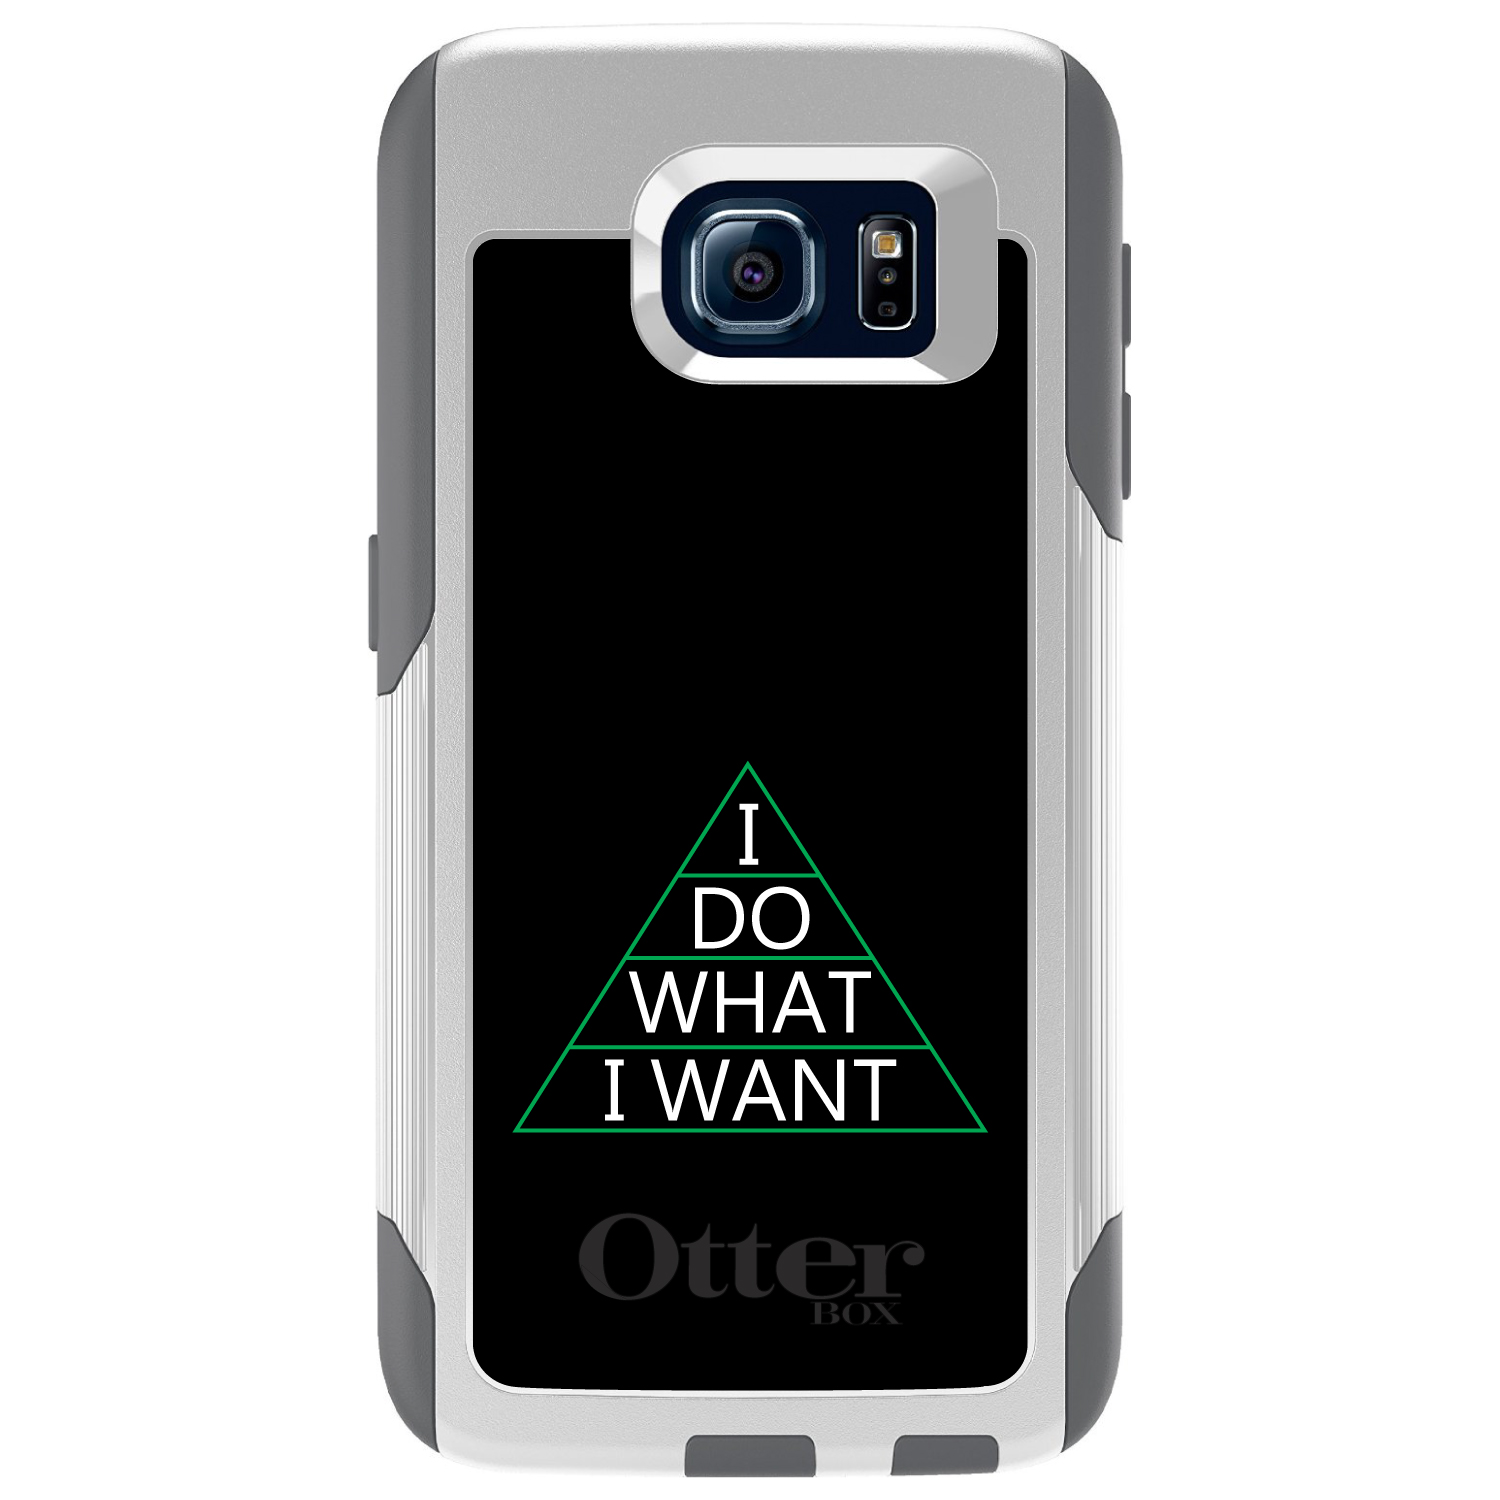 CUSTOM White OtterBox Commuter Series Case for Samsung Galaxy S6 - I Do What I Want